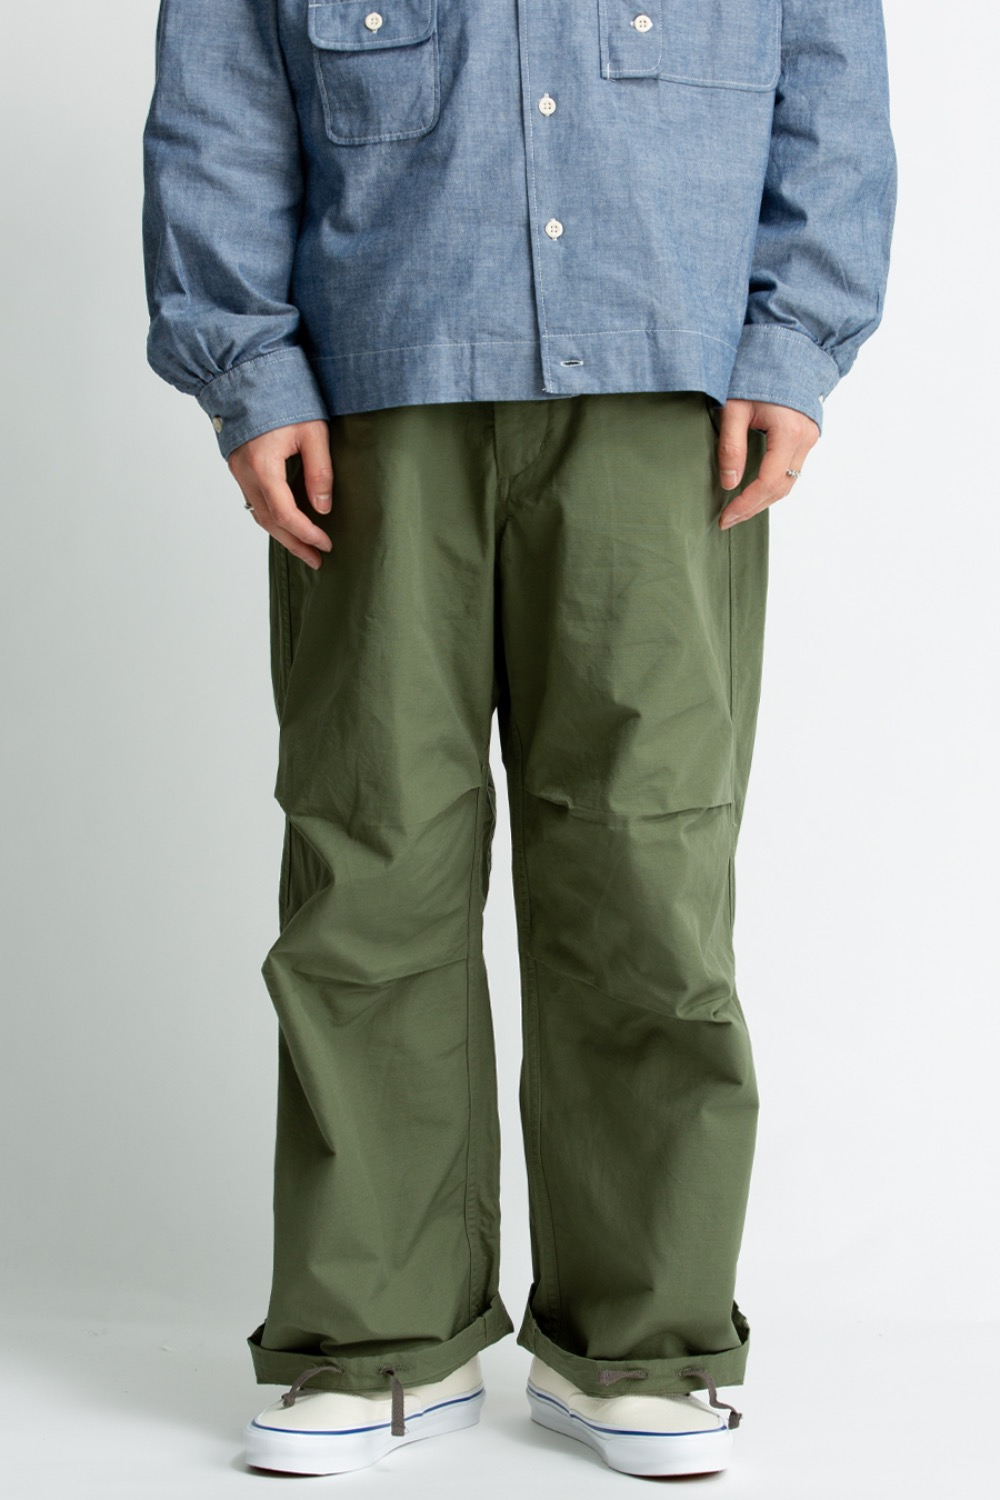 OVER PANT OLIVE COTTON RIPSTOP